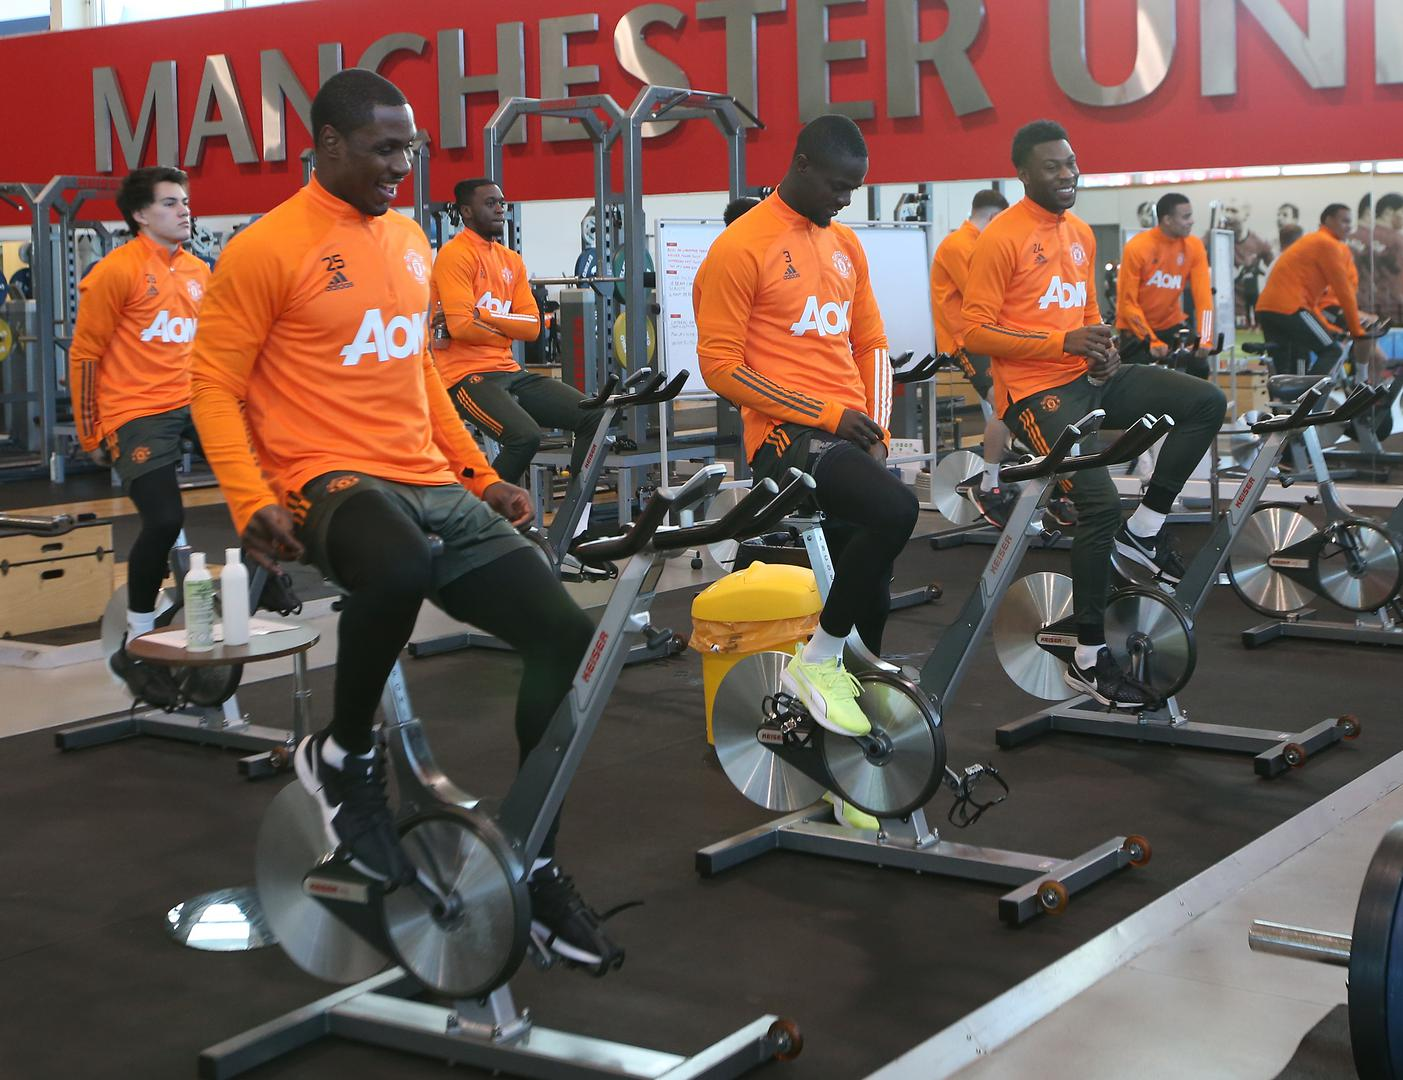 Manchester United players on exercise bikes.,